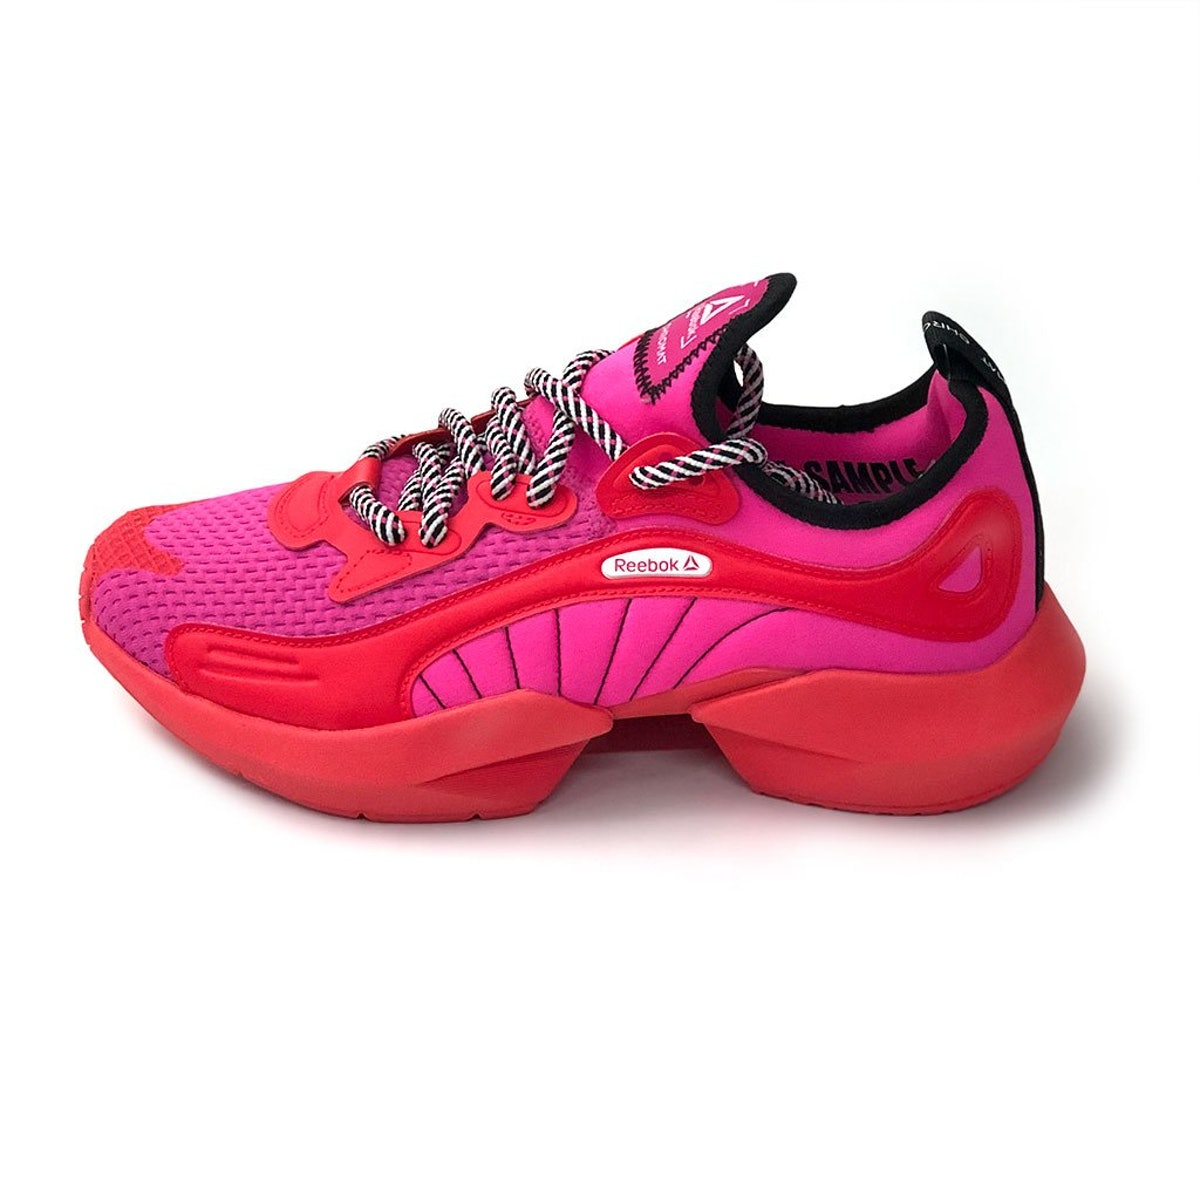 Reebok x Chromat Sole Fury Shoes in Pink